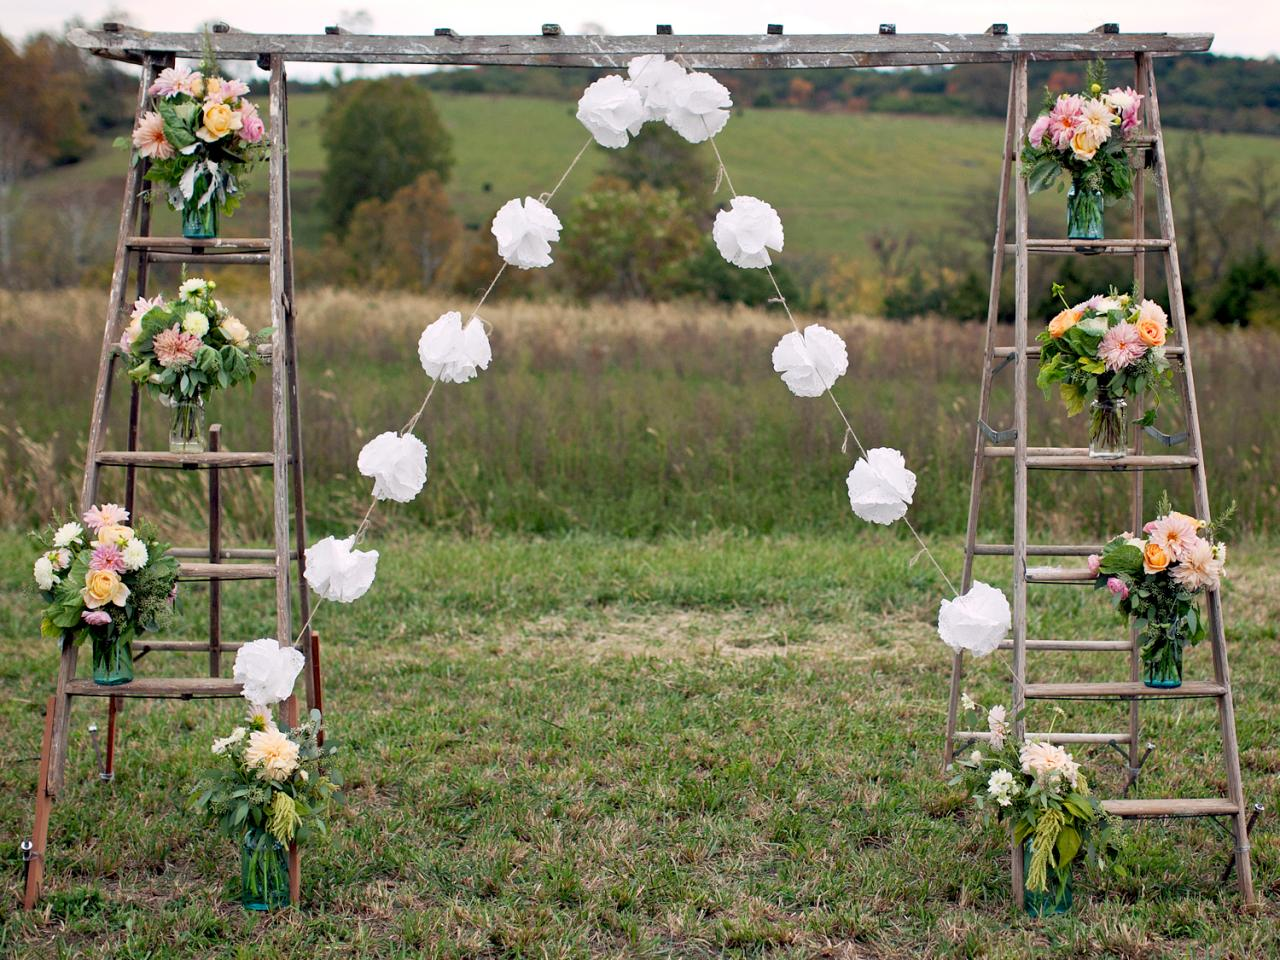 Bridal arch decoration ideas diy vintage wedding entrance ideas diy vintage wedding entrance ideas junglespirit Choice Image